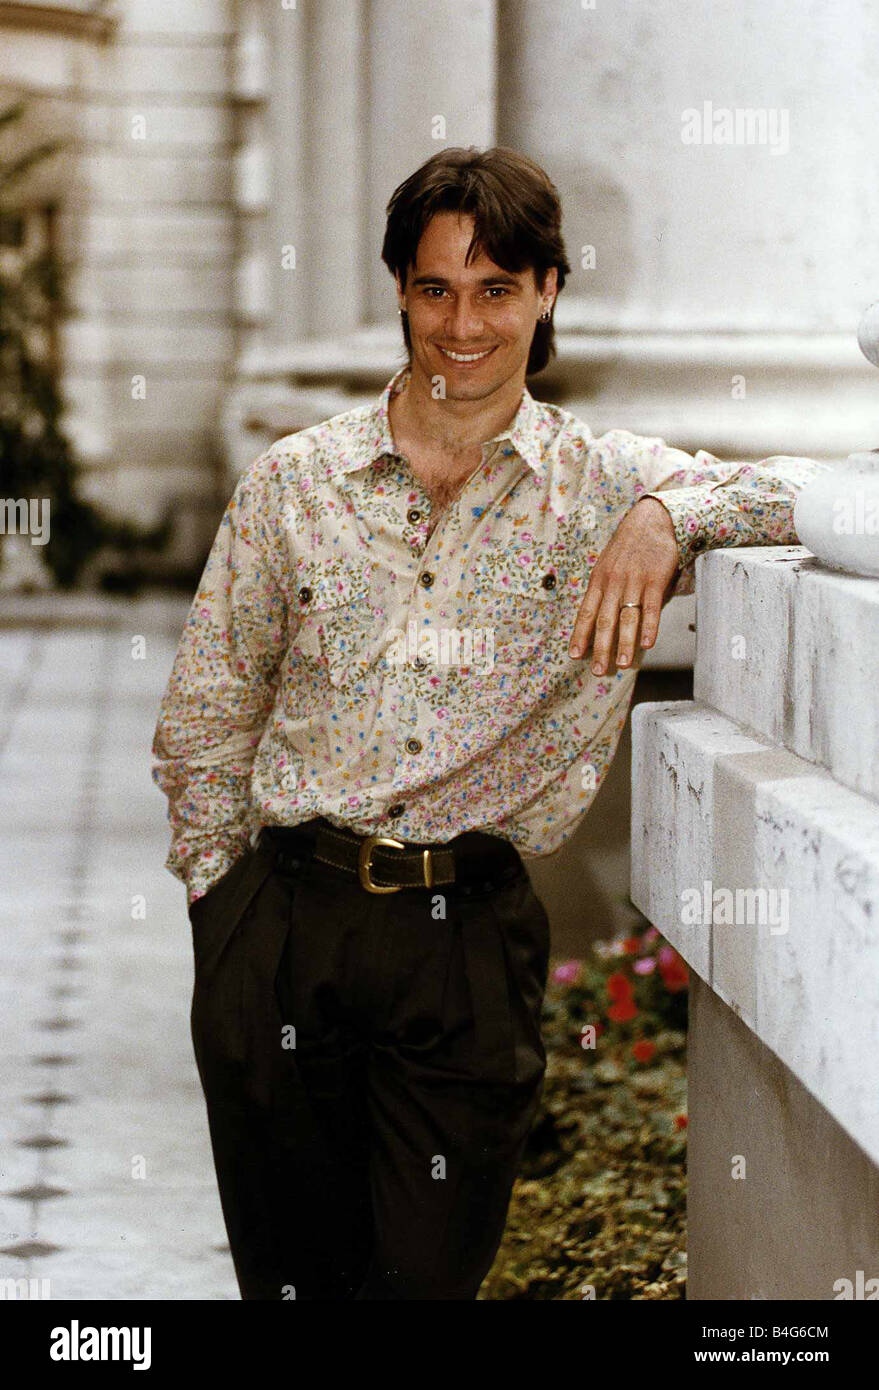 paul mercurio actorpaul mercurio dancer, paul mercurio joseph, paul mercurio, paul mercurio comedian, paul mercurio strictly ballroom, paul mercurio young, paul mercurio dancing, paul mercurio wife, paul mercurio movies, paul mercurio net worth, paul mercurio height, paul mercurio chef, paul mercurio actor, paul mercurio dancing with the stars, paul mercurio jose, paul mercurio imdb, paul mercurio exit to eden, paul mercurio now, paul mercurio wiki, paul mecurio comedy